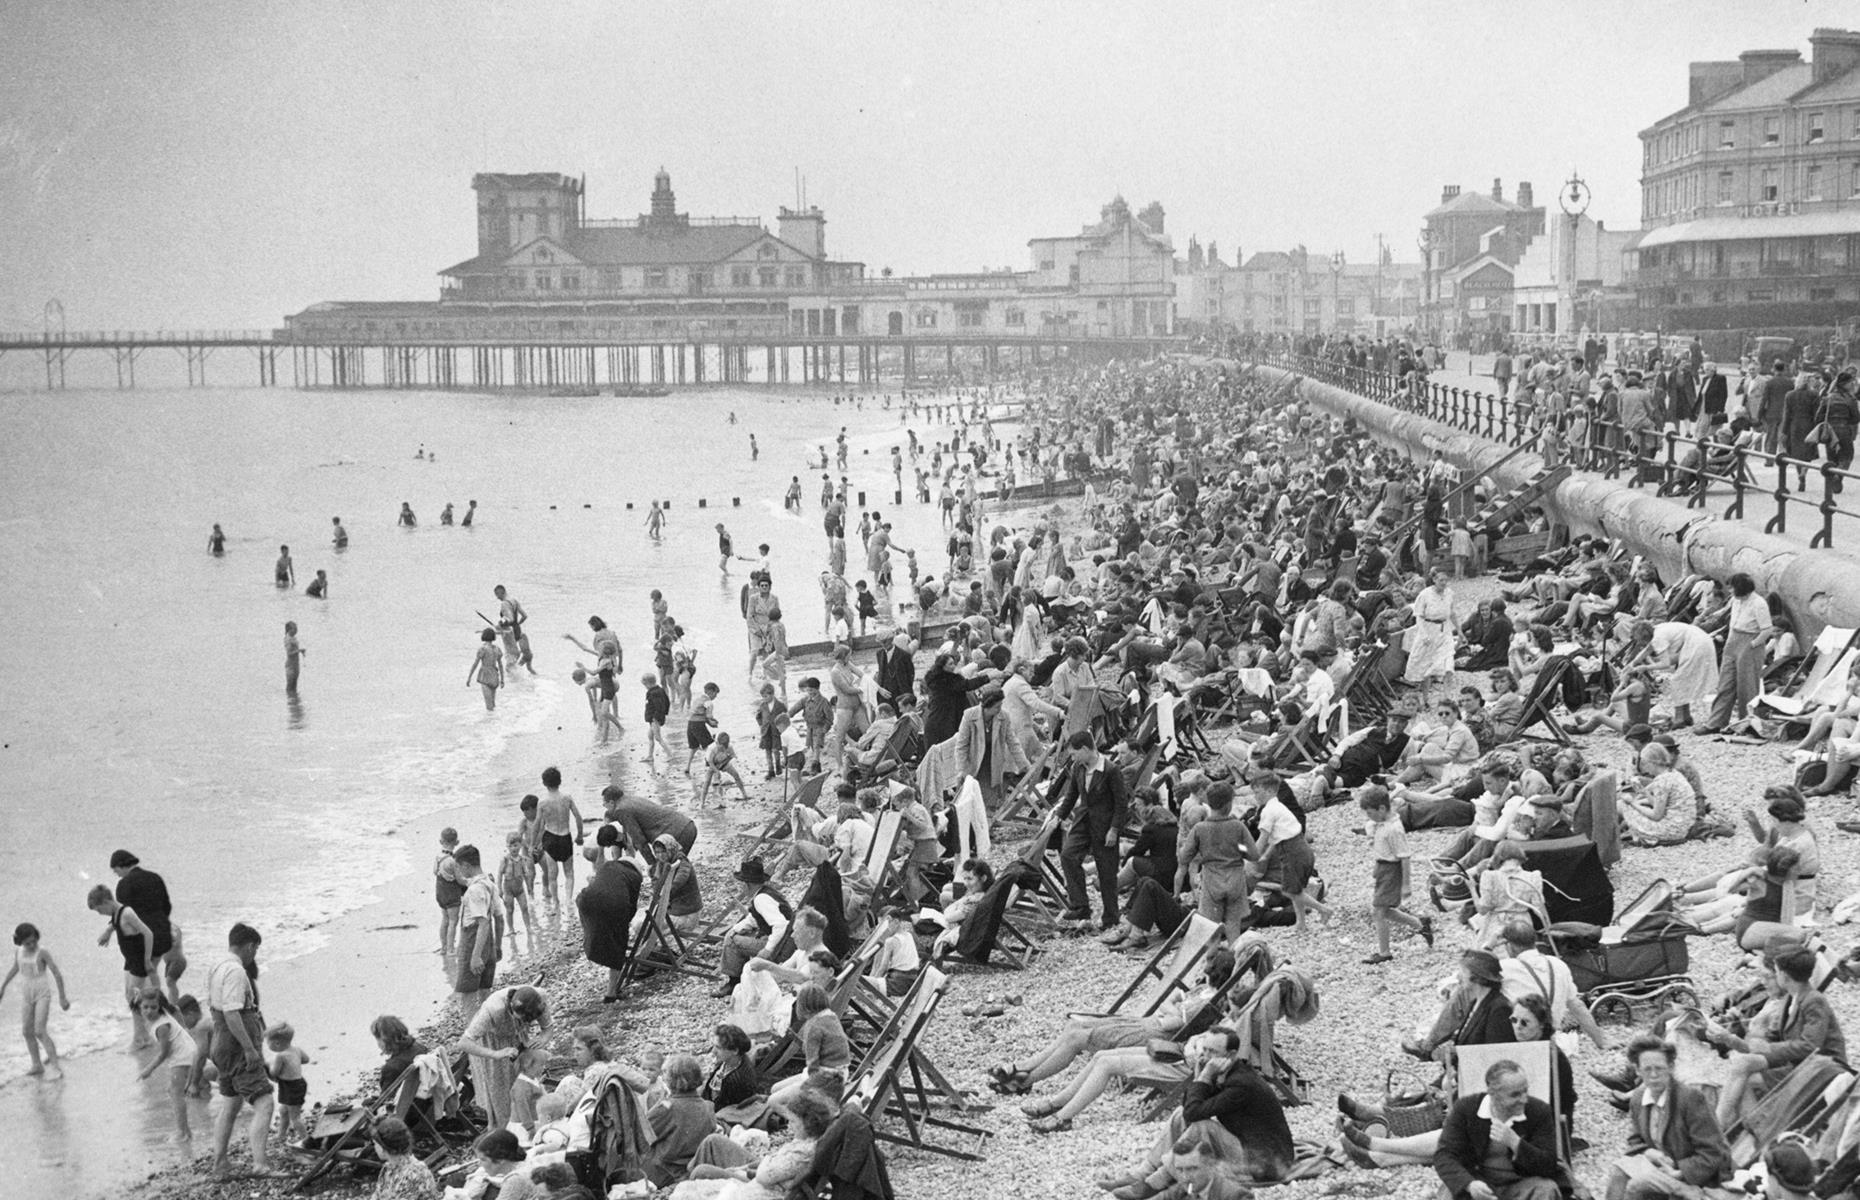 Slide 7 of 38: As the war drew to a close, resort towns such as England's Bognor Regis were flourishing once more. You can barely see the shingle for sunbathers in this photograph taken in 1945. The promenade lining the beach hums with people too.